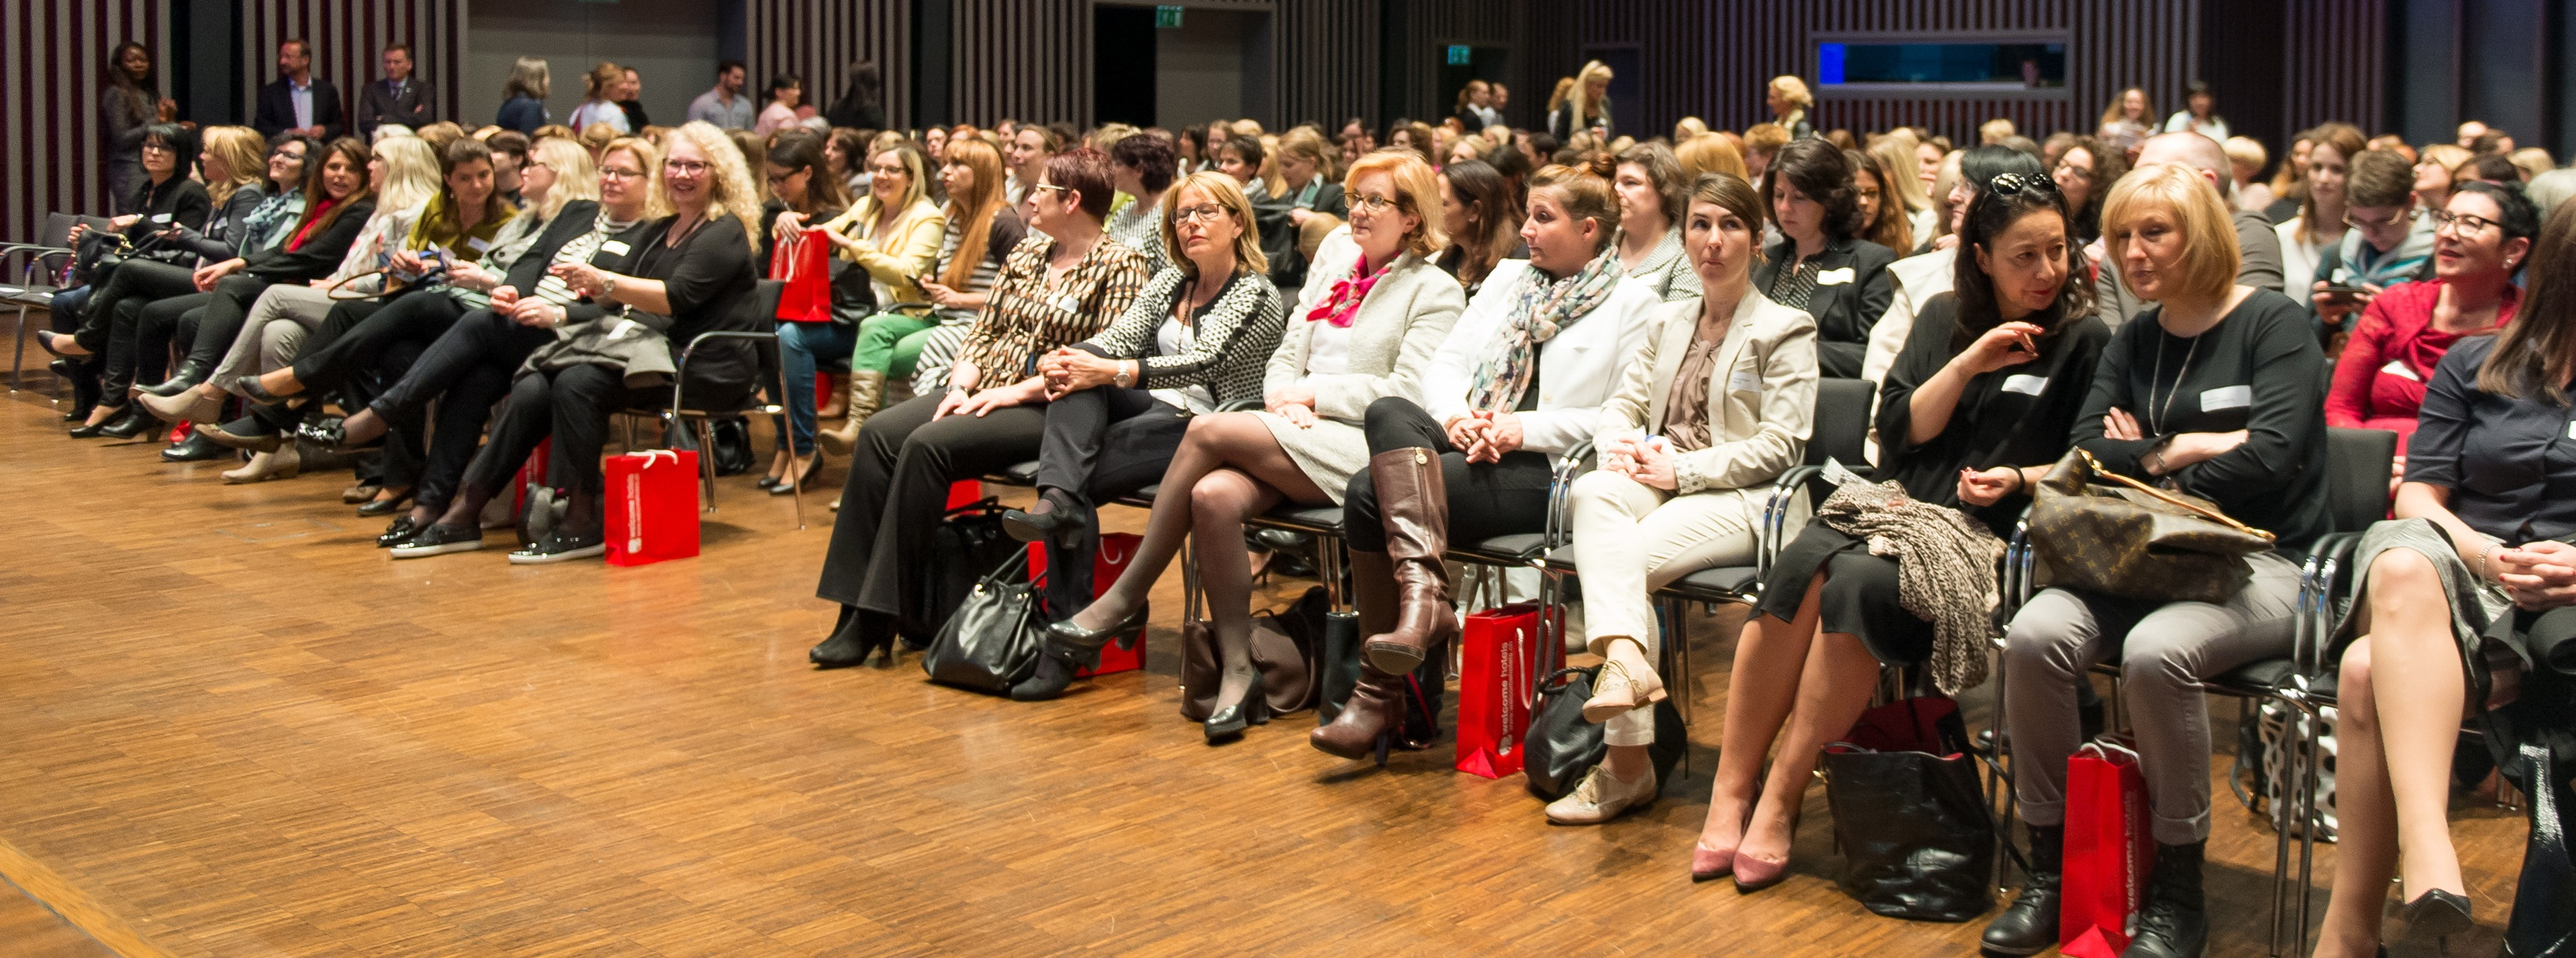 Interessiertes Publikum am Miss Moneypenny Event 2016 im Trafo Baden